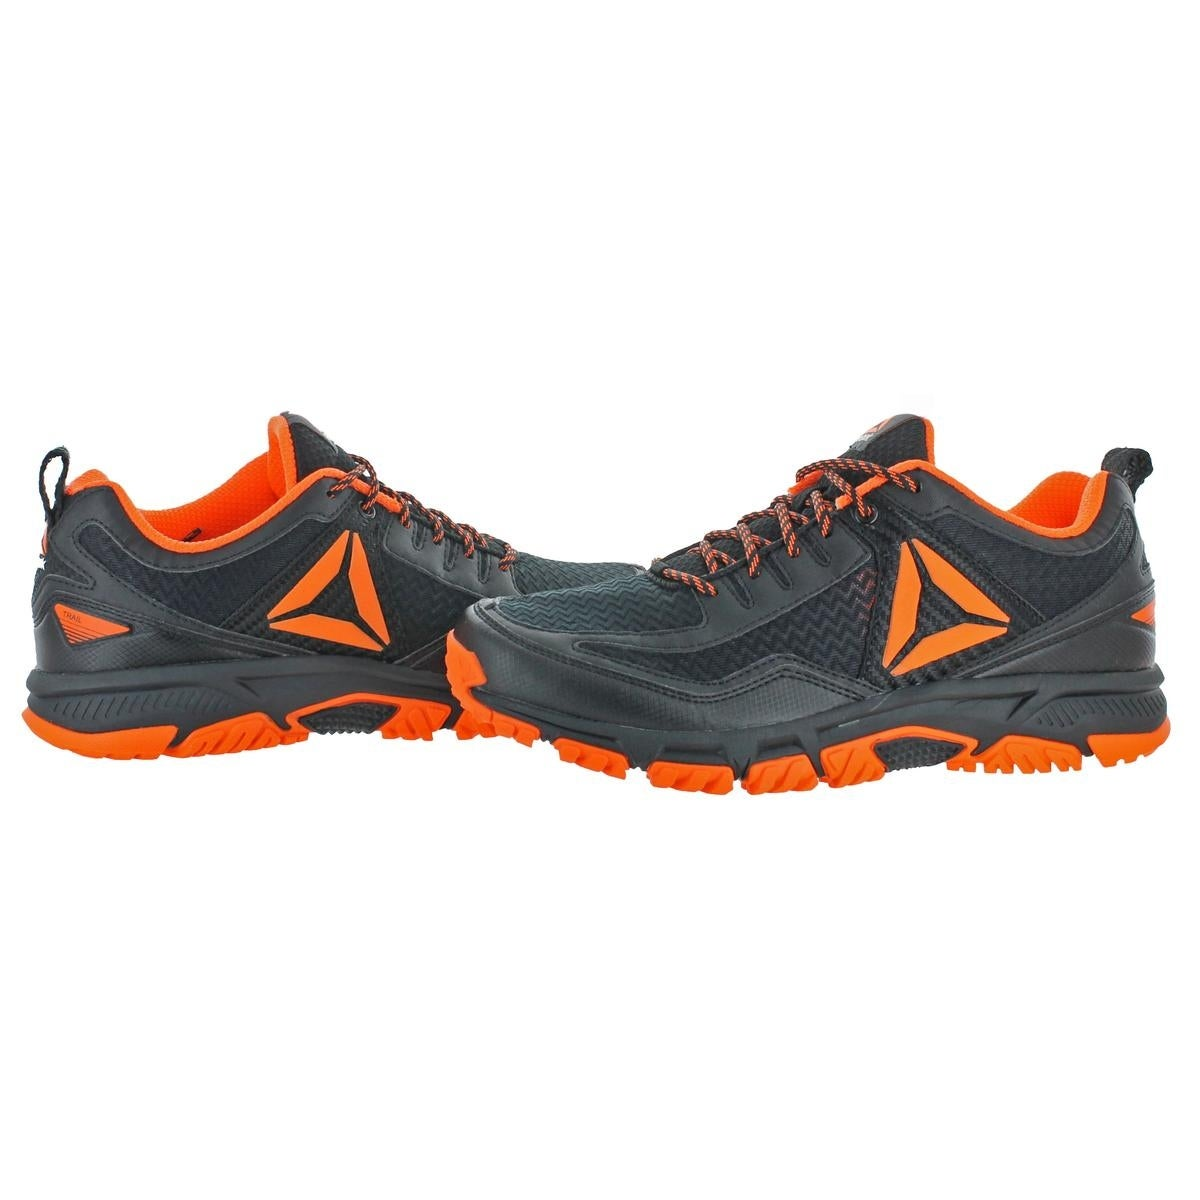 new products 4de65 c81cb Shop Reebok Mens Ridgerider Trail 2 MT Hiking, Trail Shoes MemoryTech  Comfortable - 10 Extra Wide (E+, WW) - Free Shipping On Orders Over  45 -  Overstock - ...